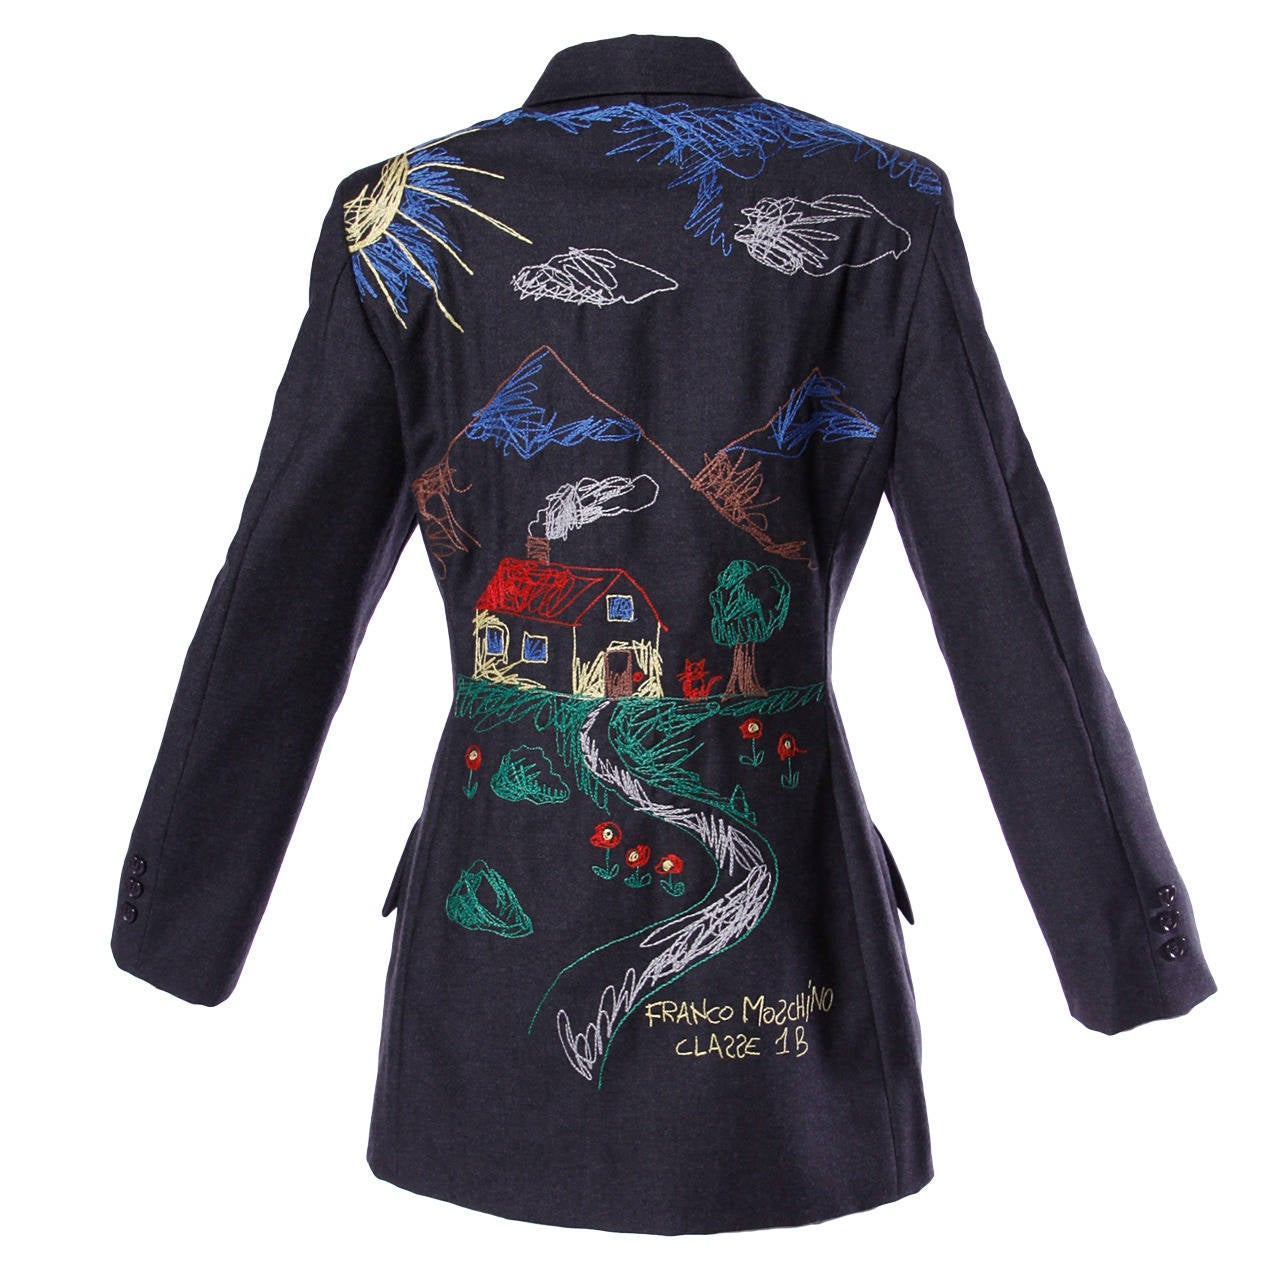 Signed franco moschino vintage s embroidered